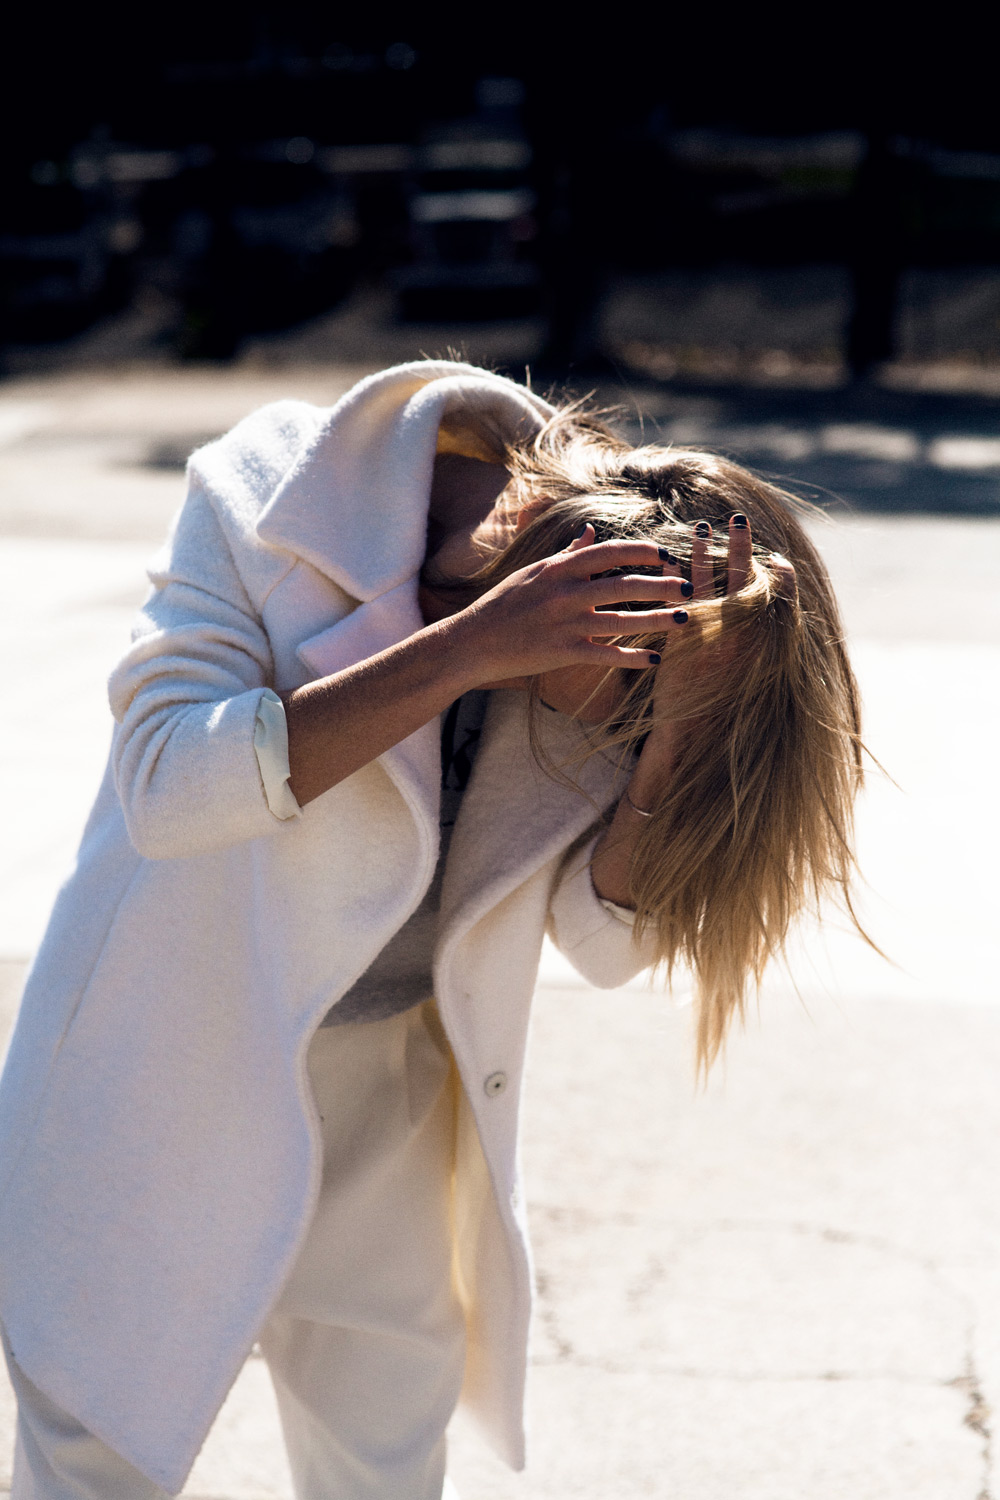 Mandy Shadforth is wearing an oversized white coat from Carven, grey T-shirt and and white trousers from Ellery